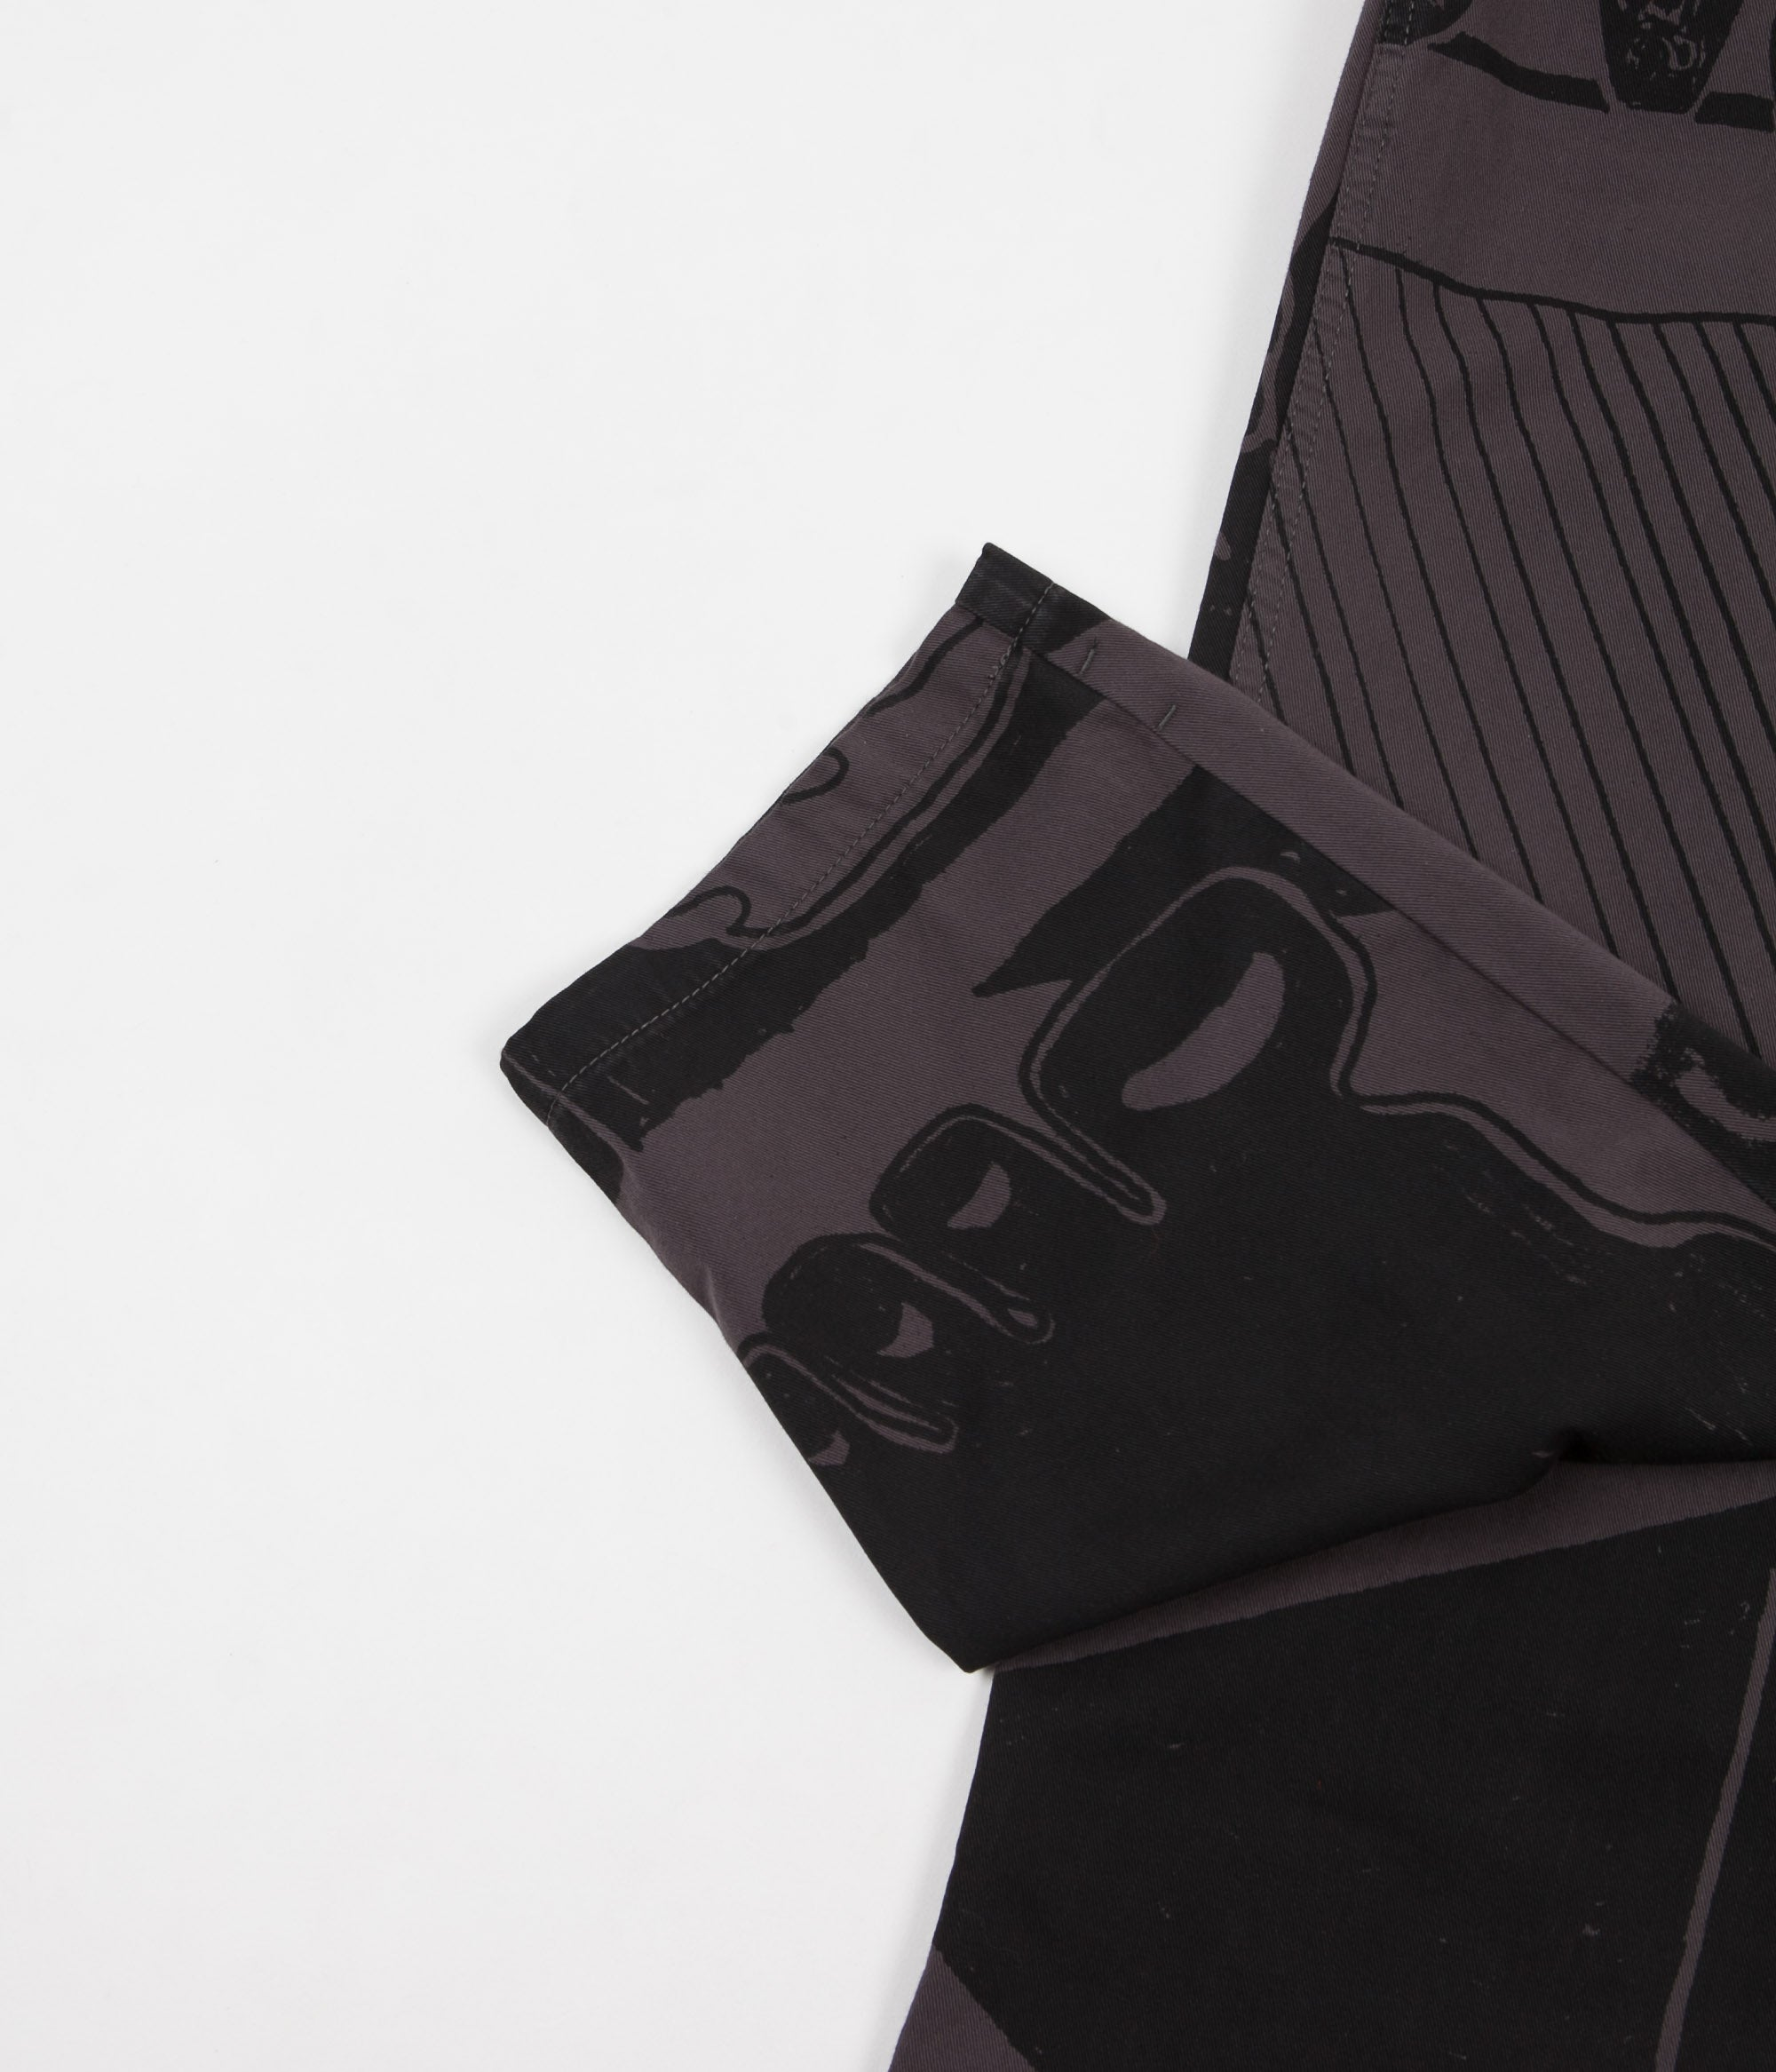 Polar TK Surf Pants - Black / Graphite